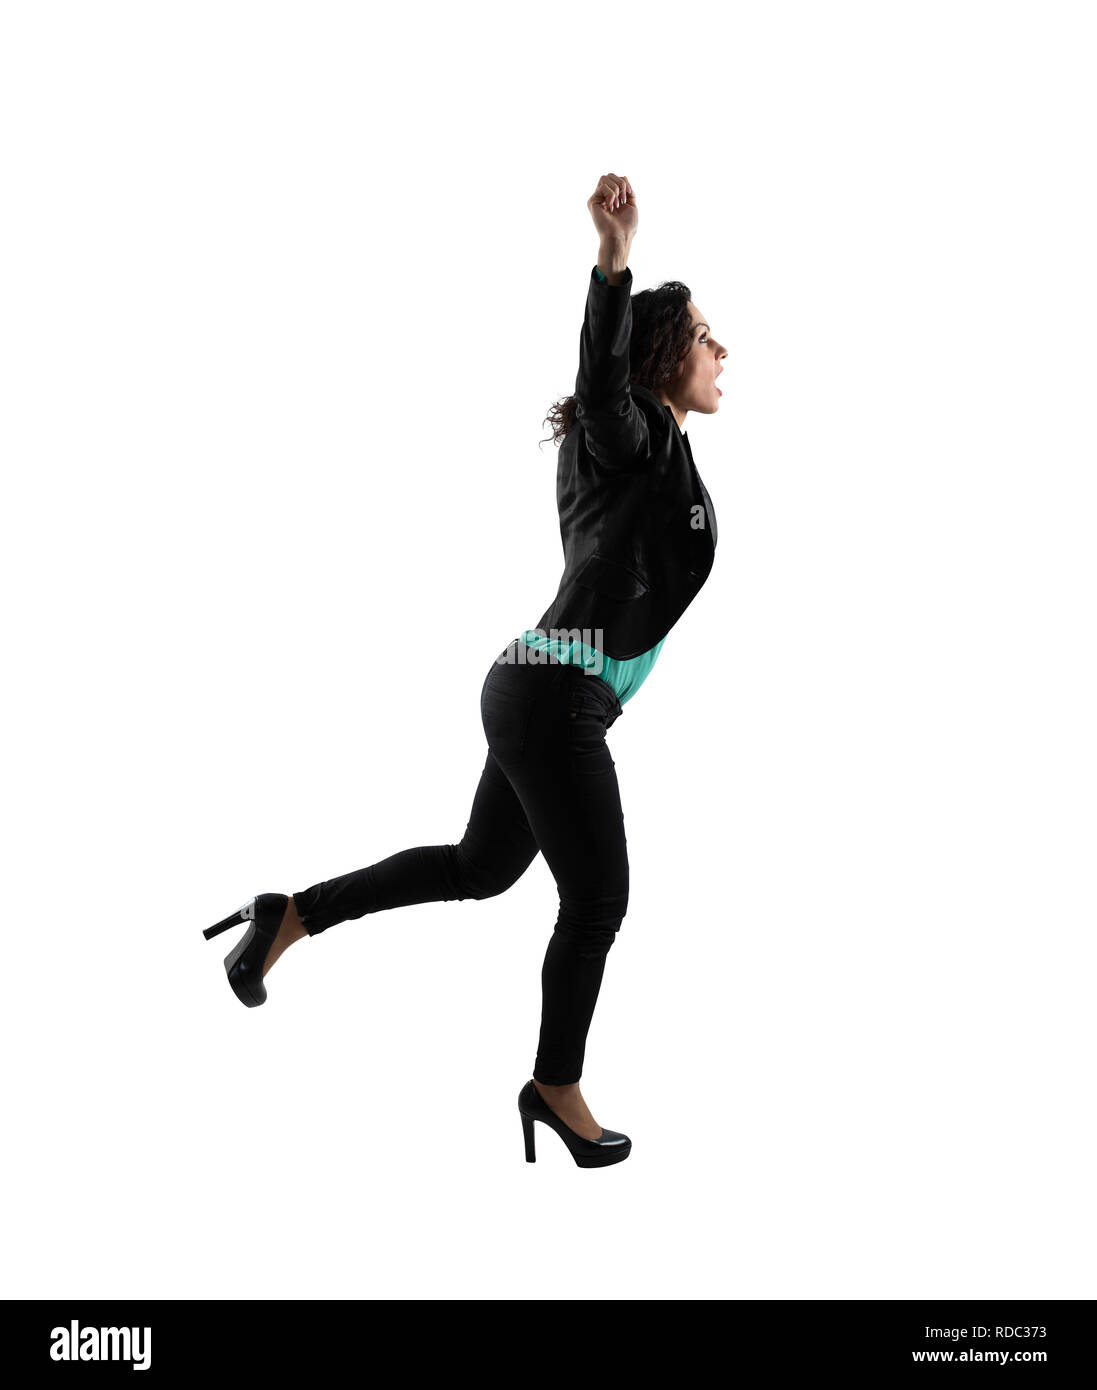 Winning businesswoman that runs. Isolated on white background - Stock Image